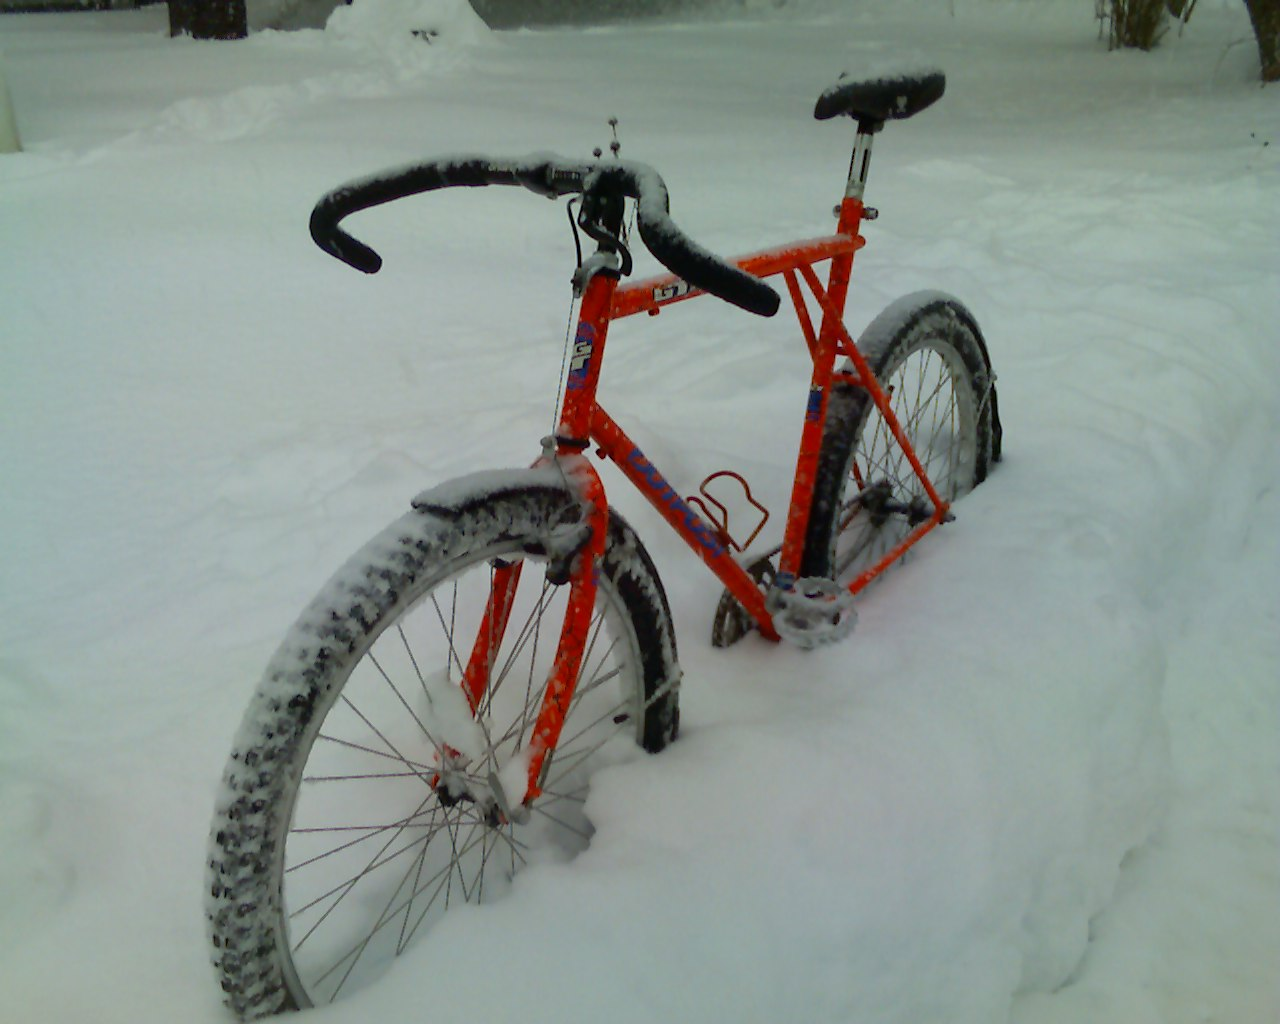 The single consolidated official drop bar thread-winter-bike-winter.jpg